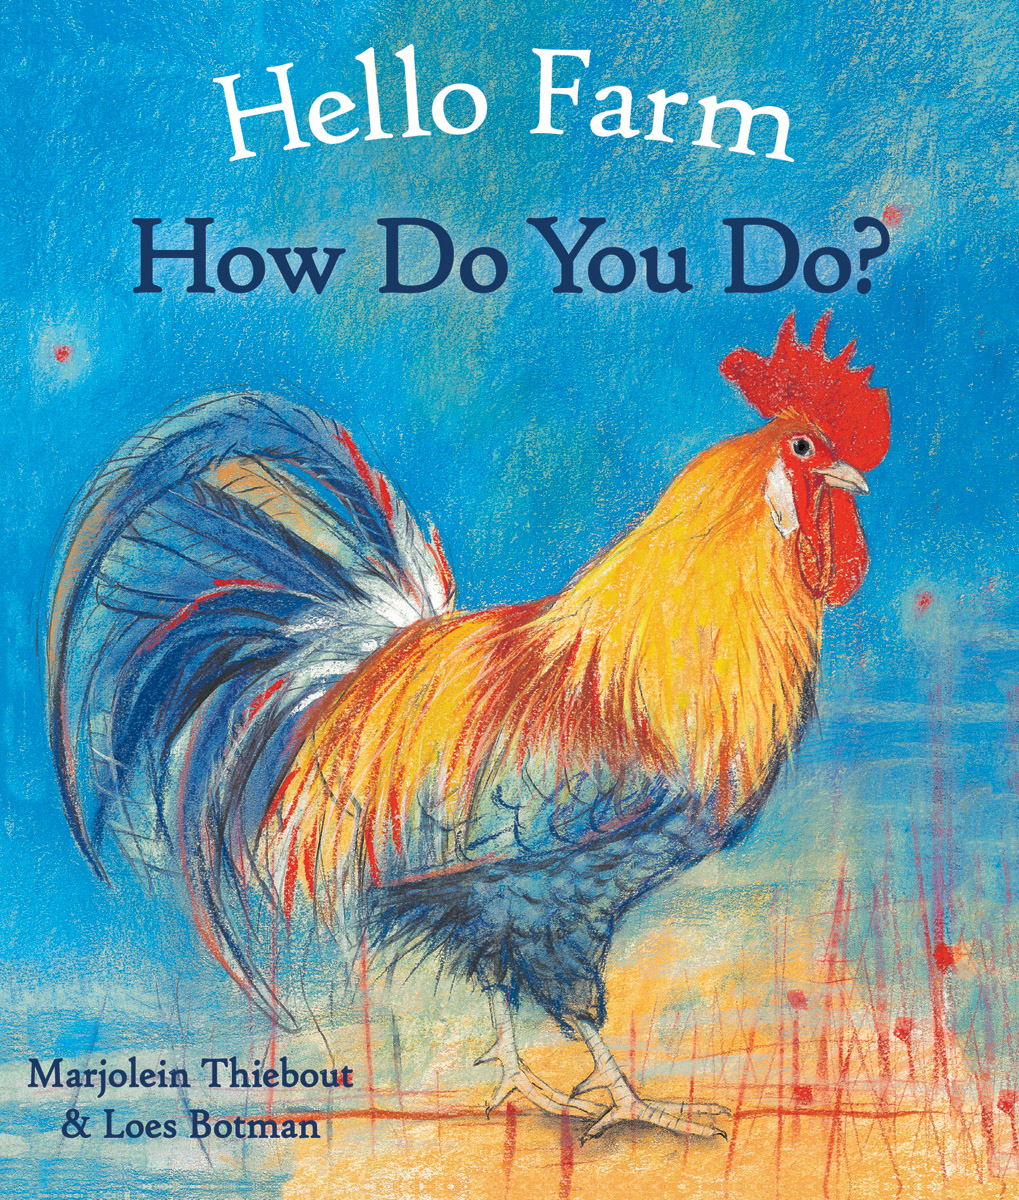 Hello Farm, How Do You Do? - Floris Books